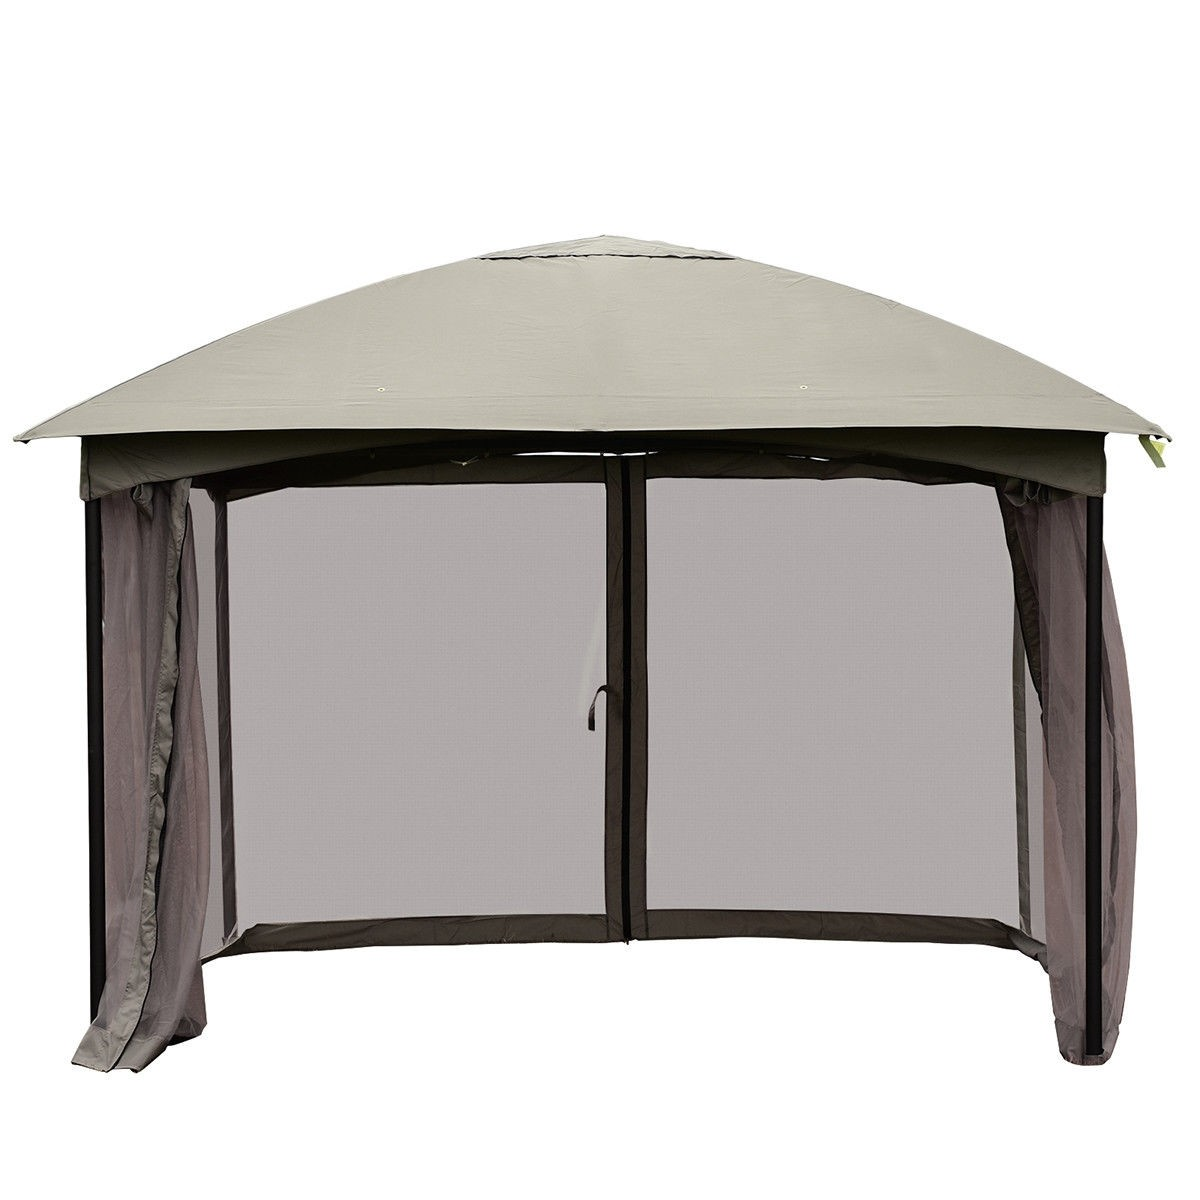 Charmant 11.5FT Patio Gazebo Canopy Tent Wedding Party Awning Mosquito Netting